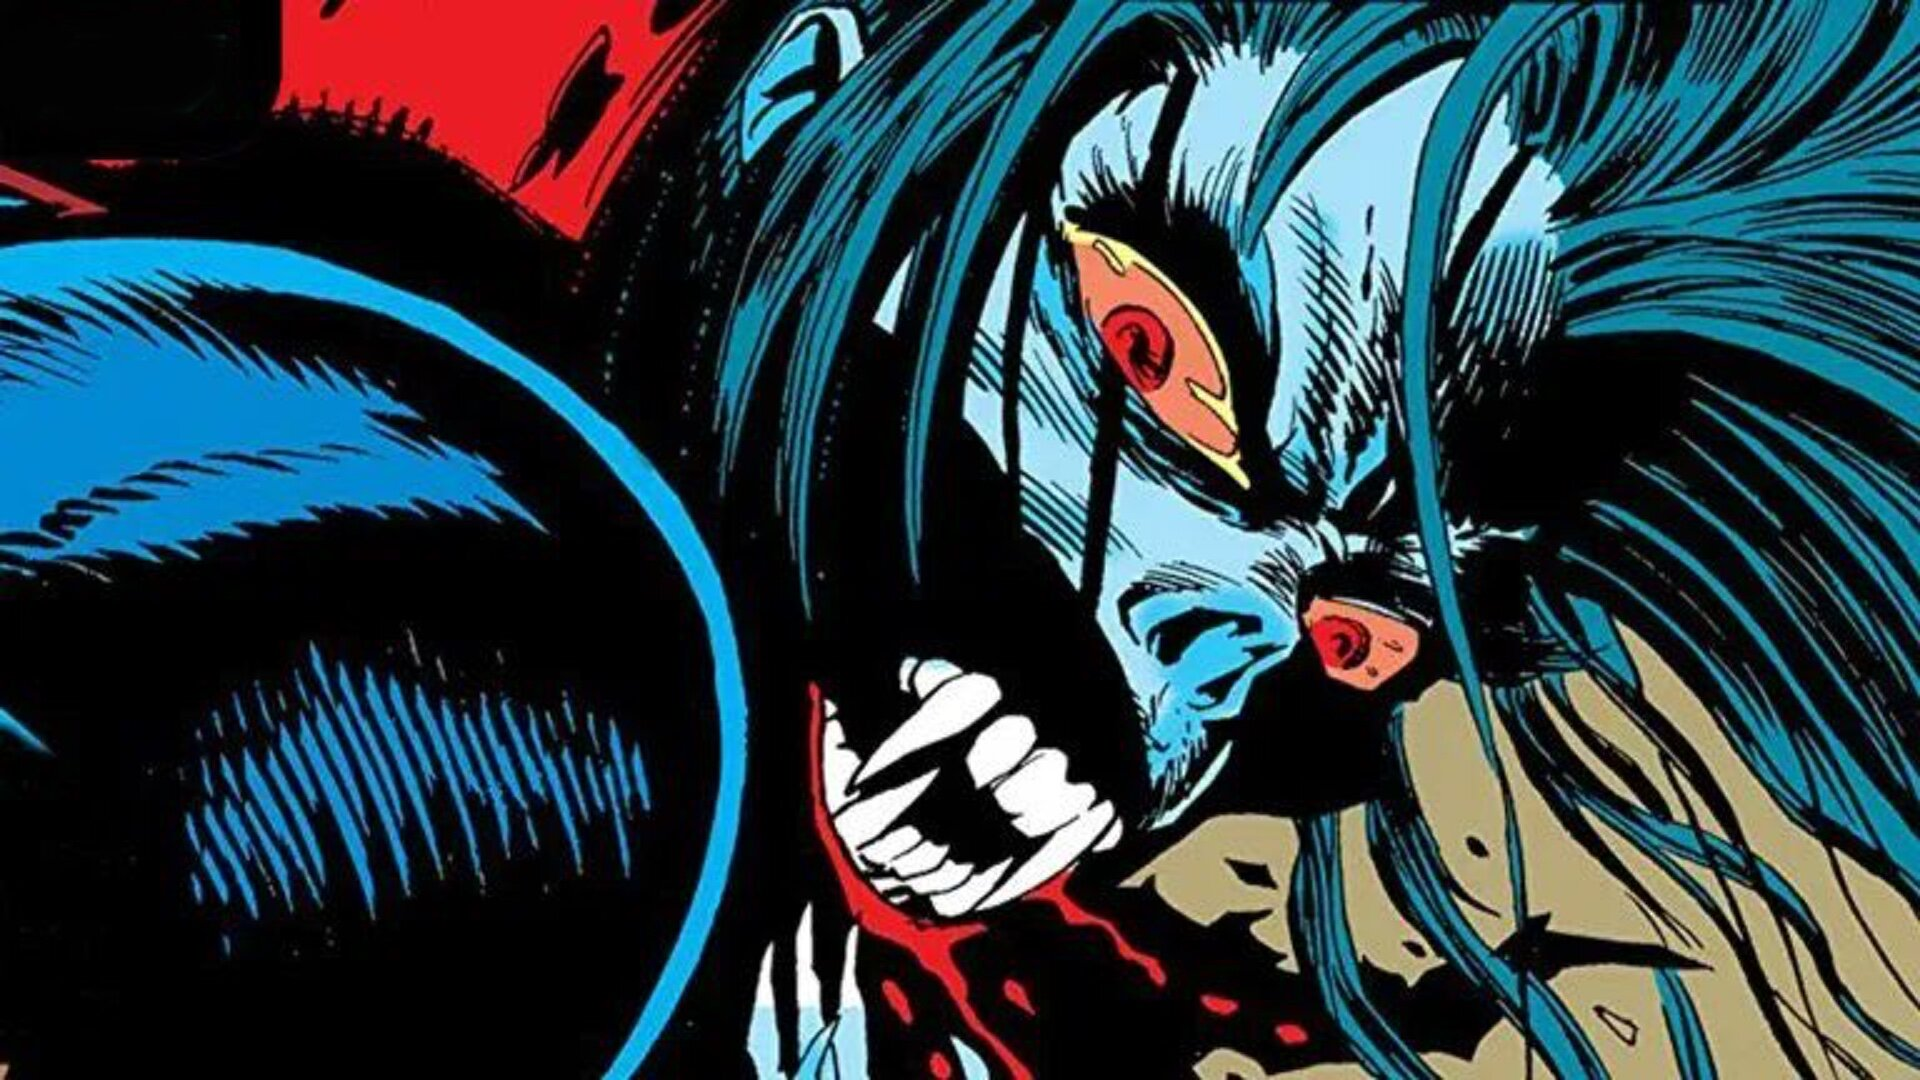 Jared Leto Morbius >> Crazy First Look At Jared Leto As Morbius The Living Vampire